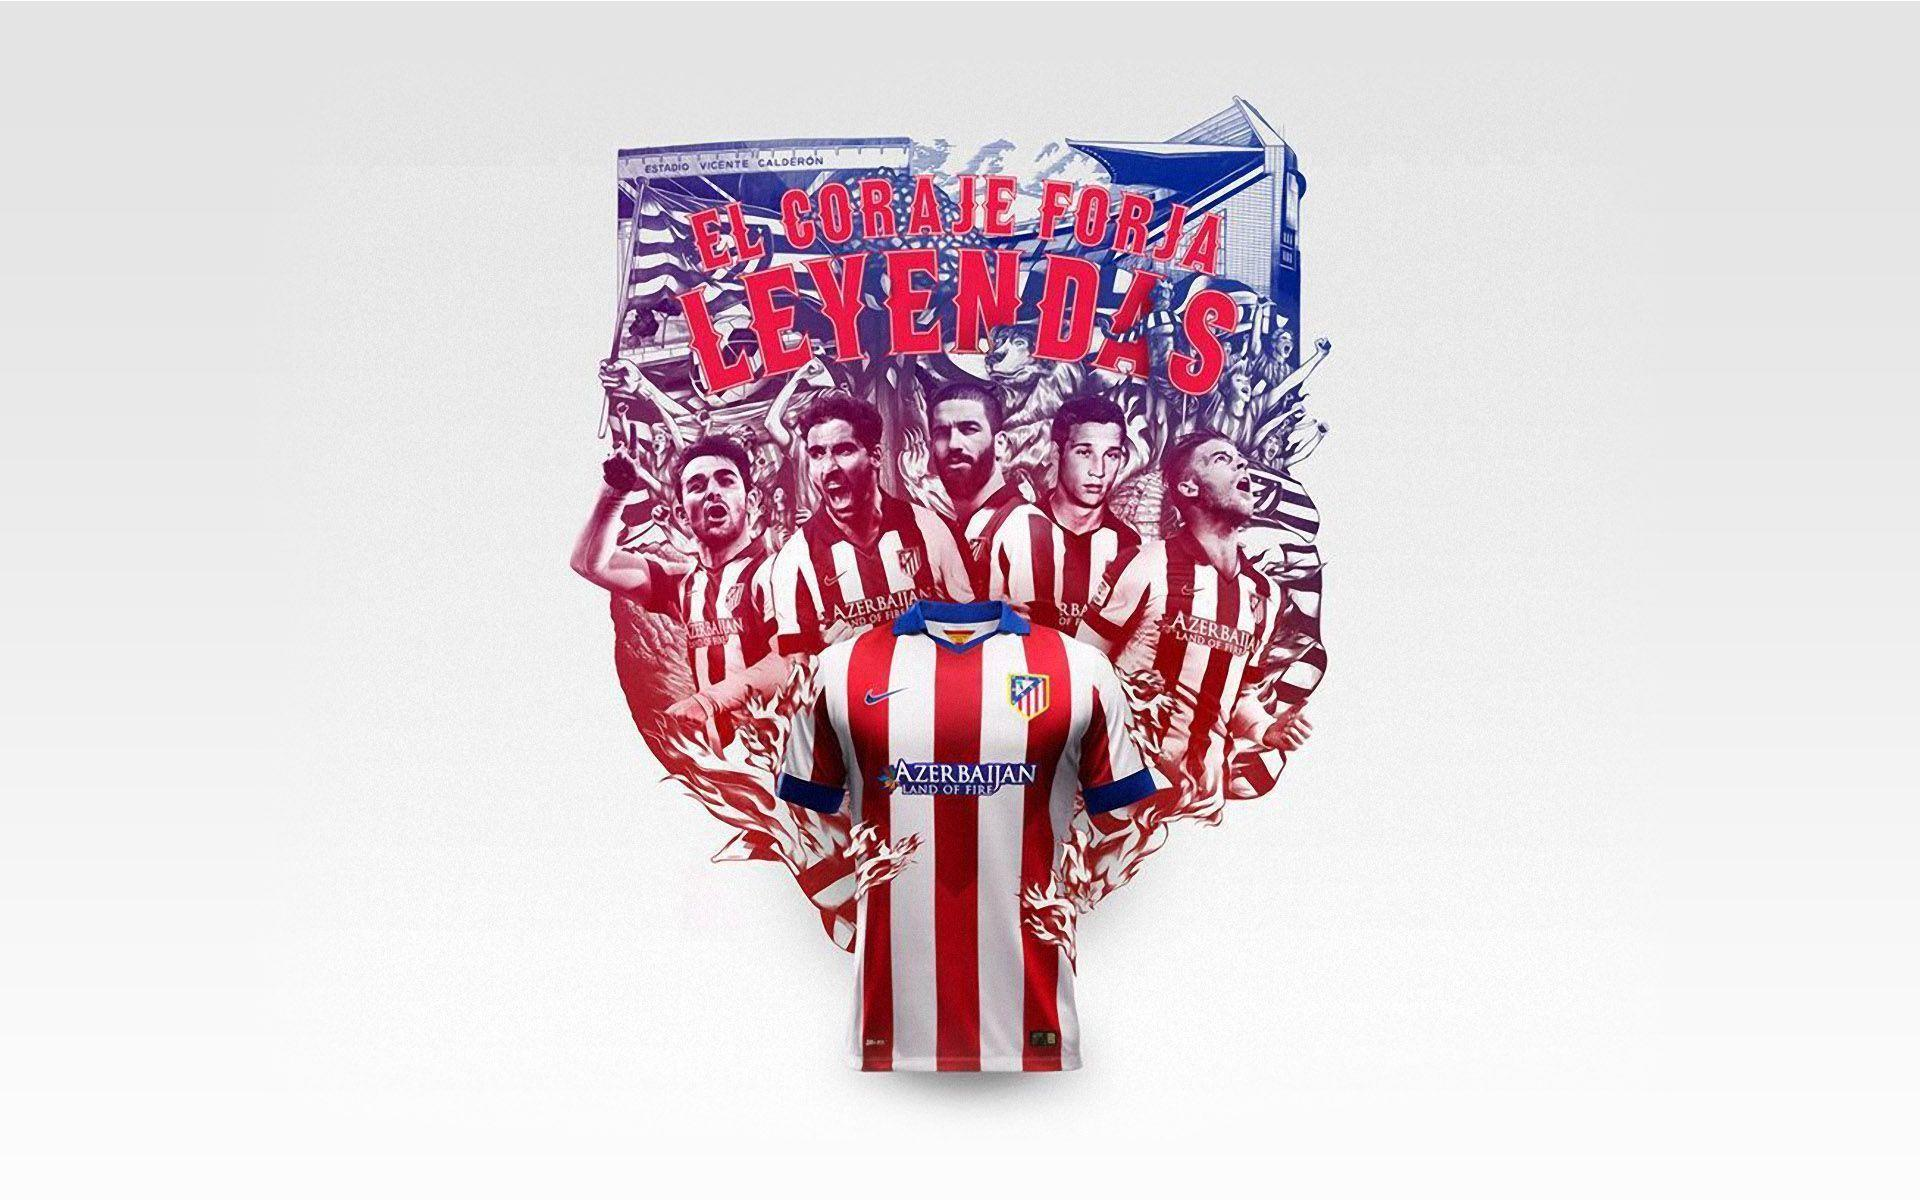 2014 Atletico Madrid Wallpapers For Desktop 2637 Football